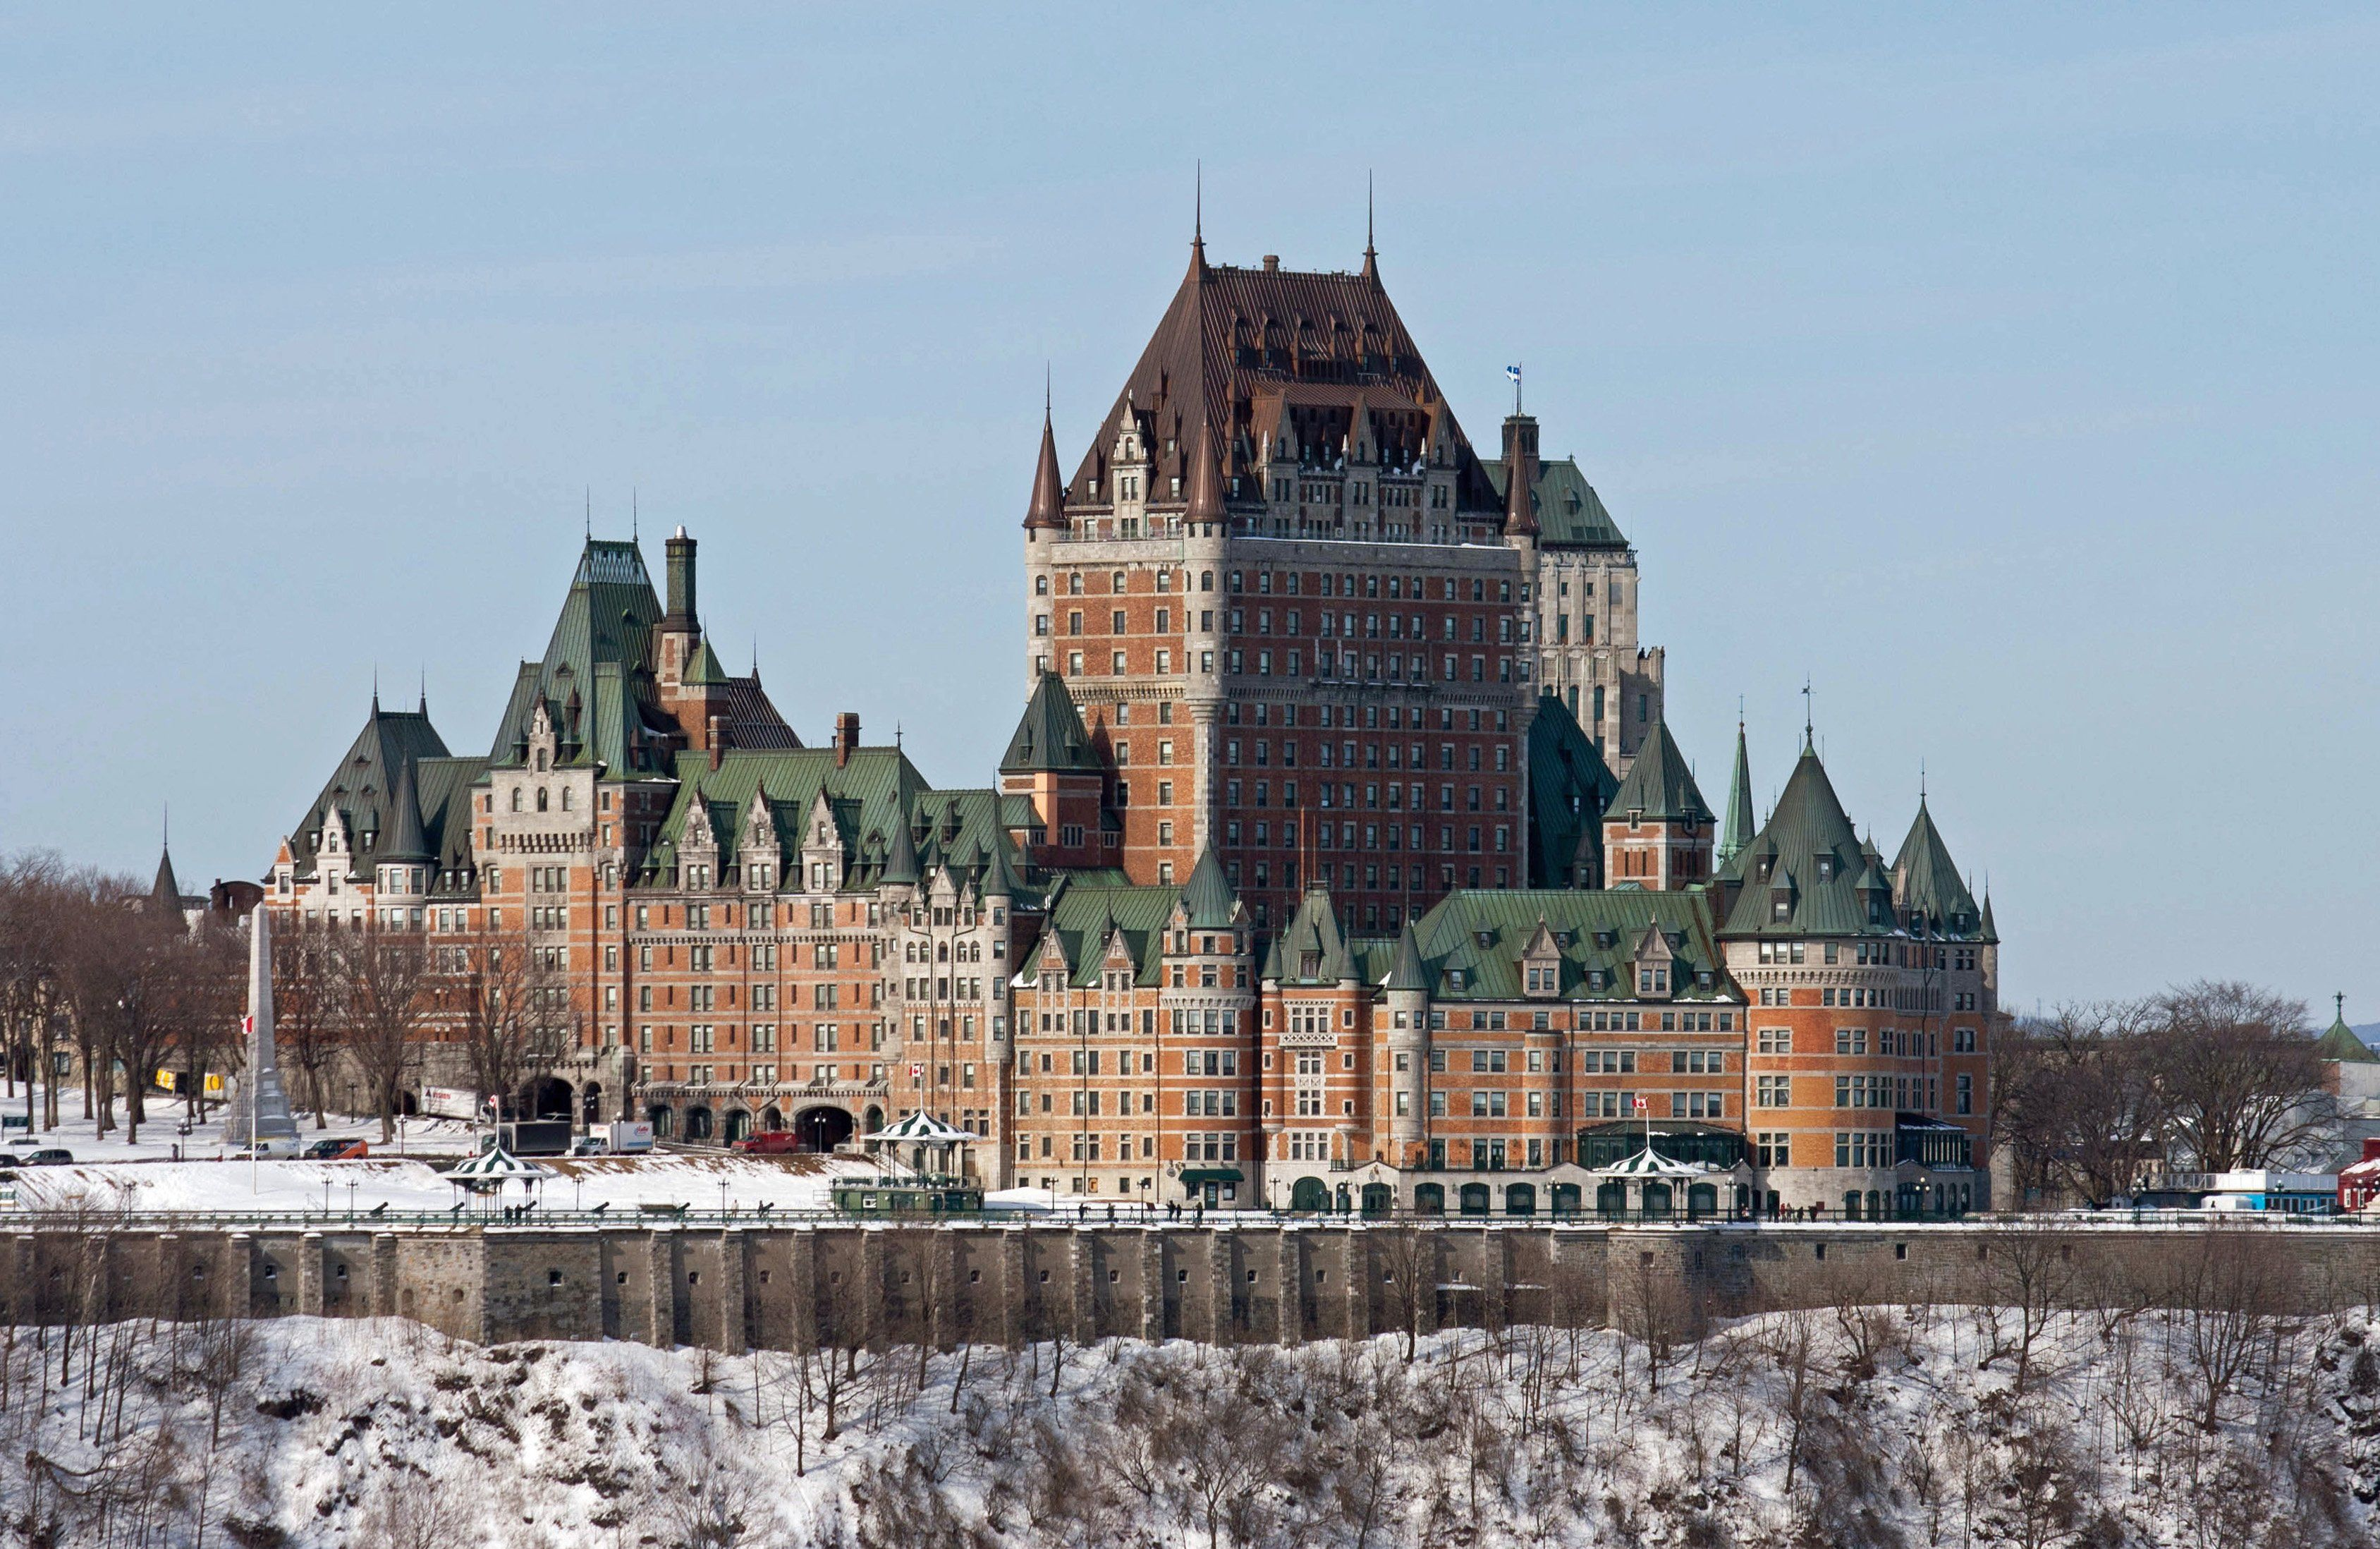 What Are The Dimensions Of The Roof Of The Chateau Frontenac Entire Building Is 79 9m Tall Building Architecture Frontenac Quebec City Beautiful Castles